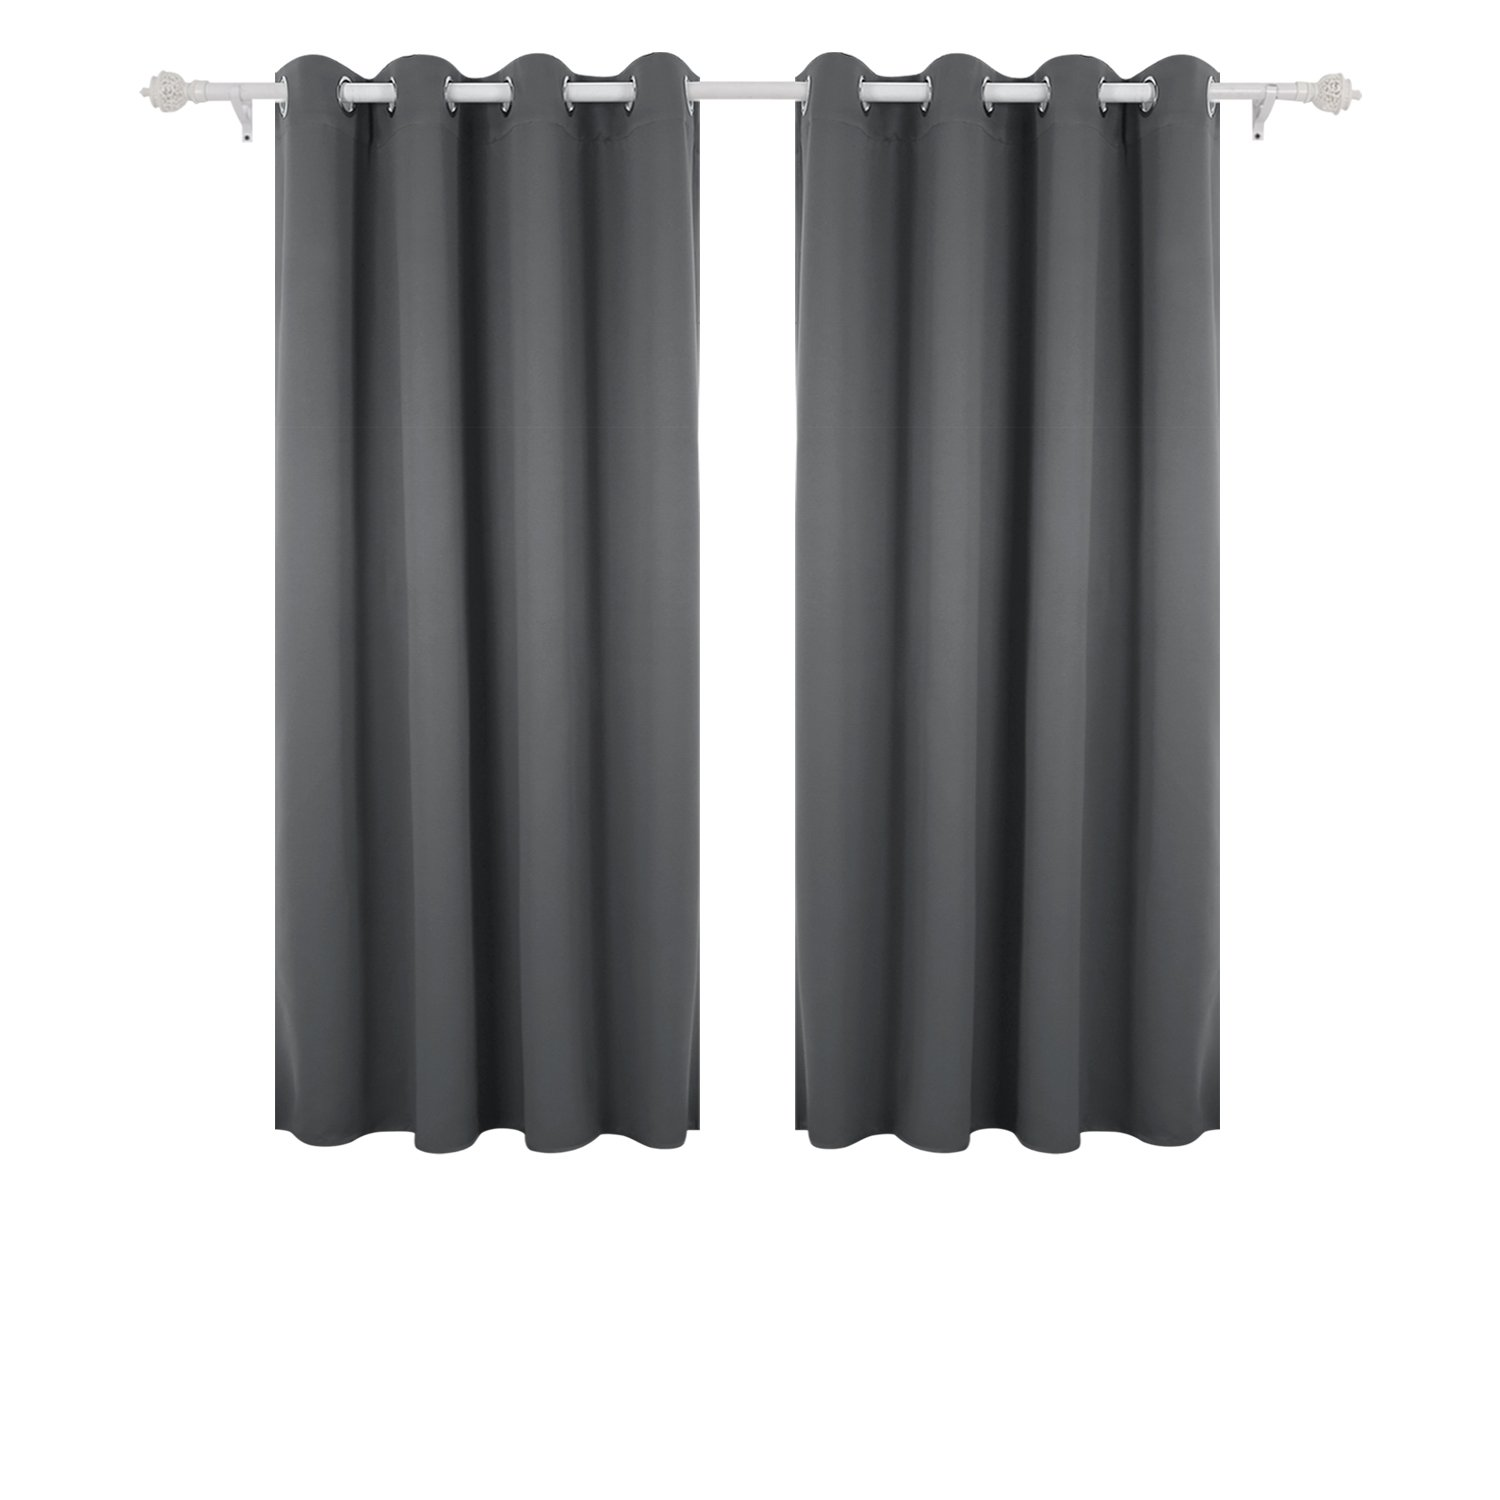 Deconovo Super Soft Thermal Insulated Window Treatment Bedroom Curtains Blackout Eyelet For Livingroom With